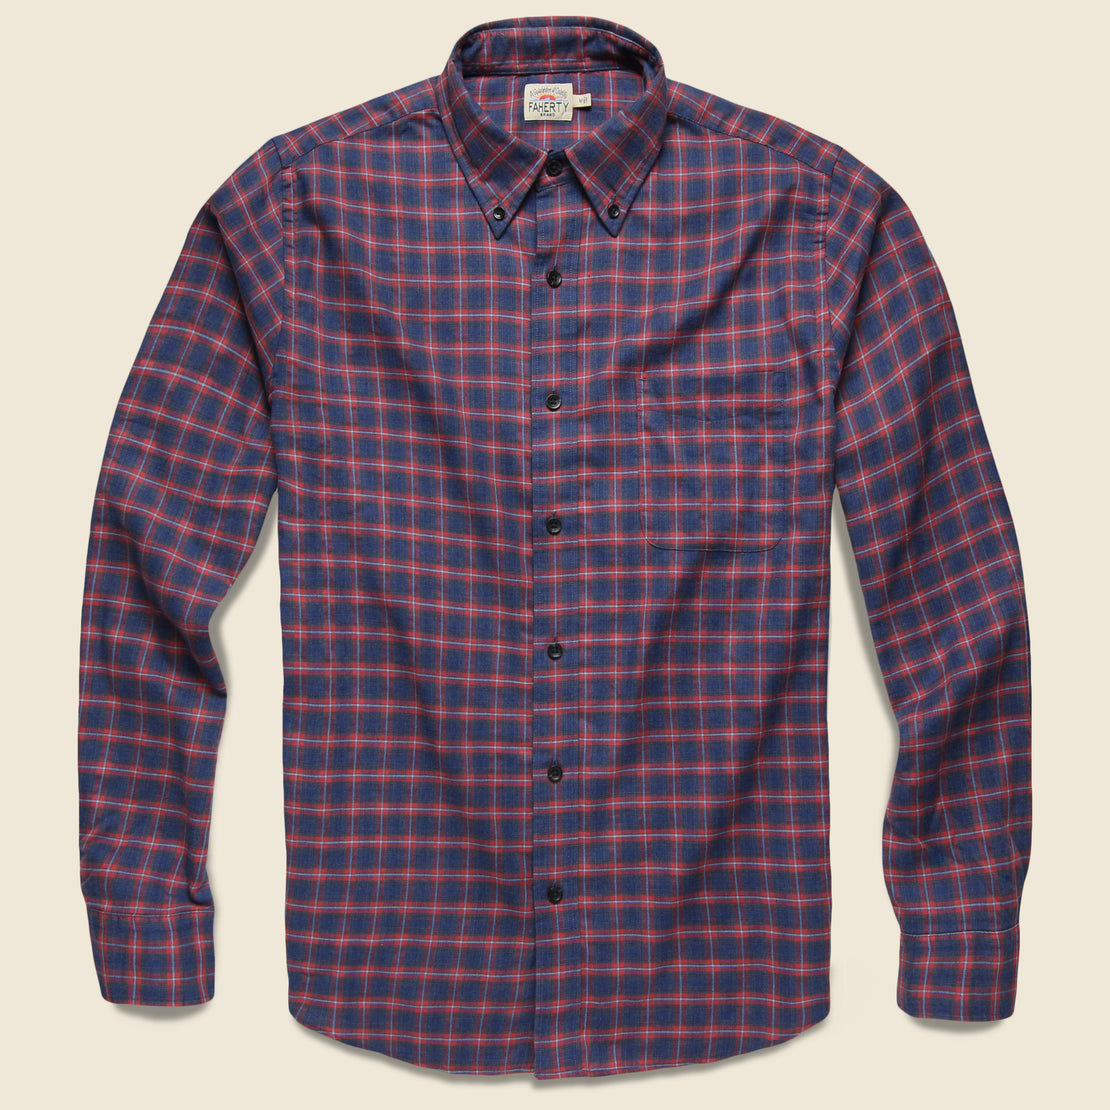 Faherty Everyday Shirt - Festive Check